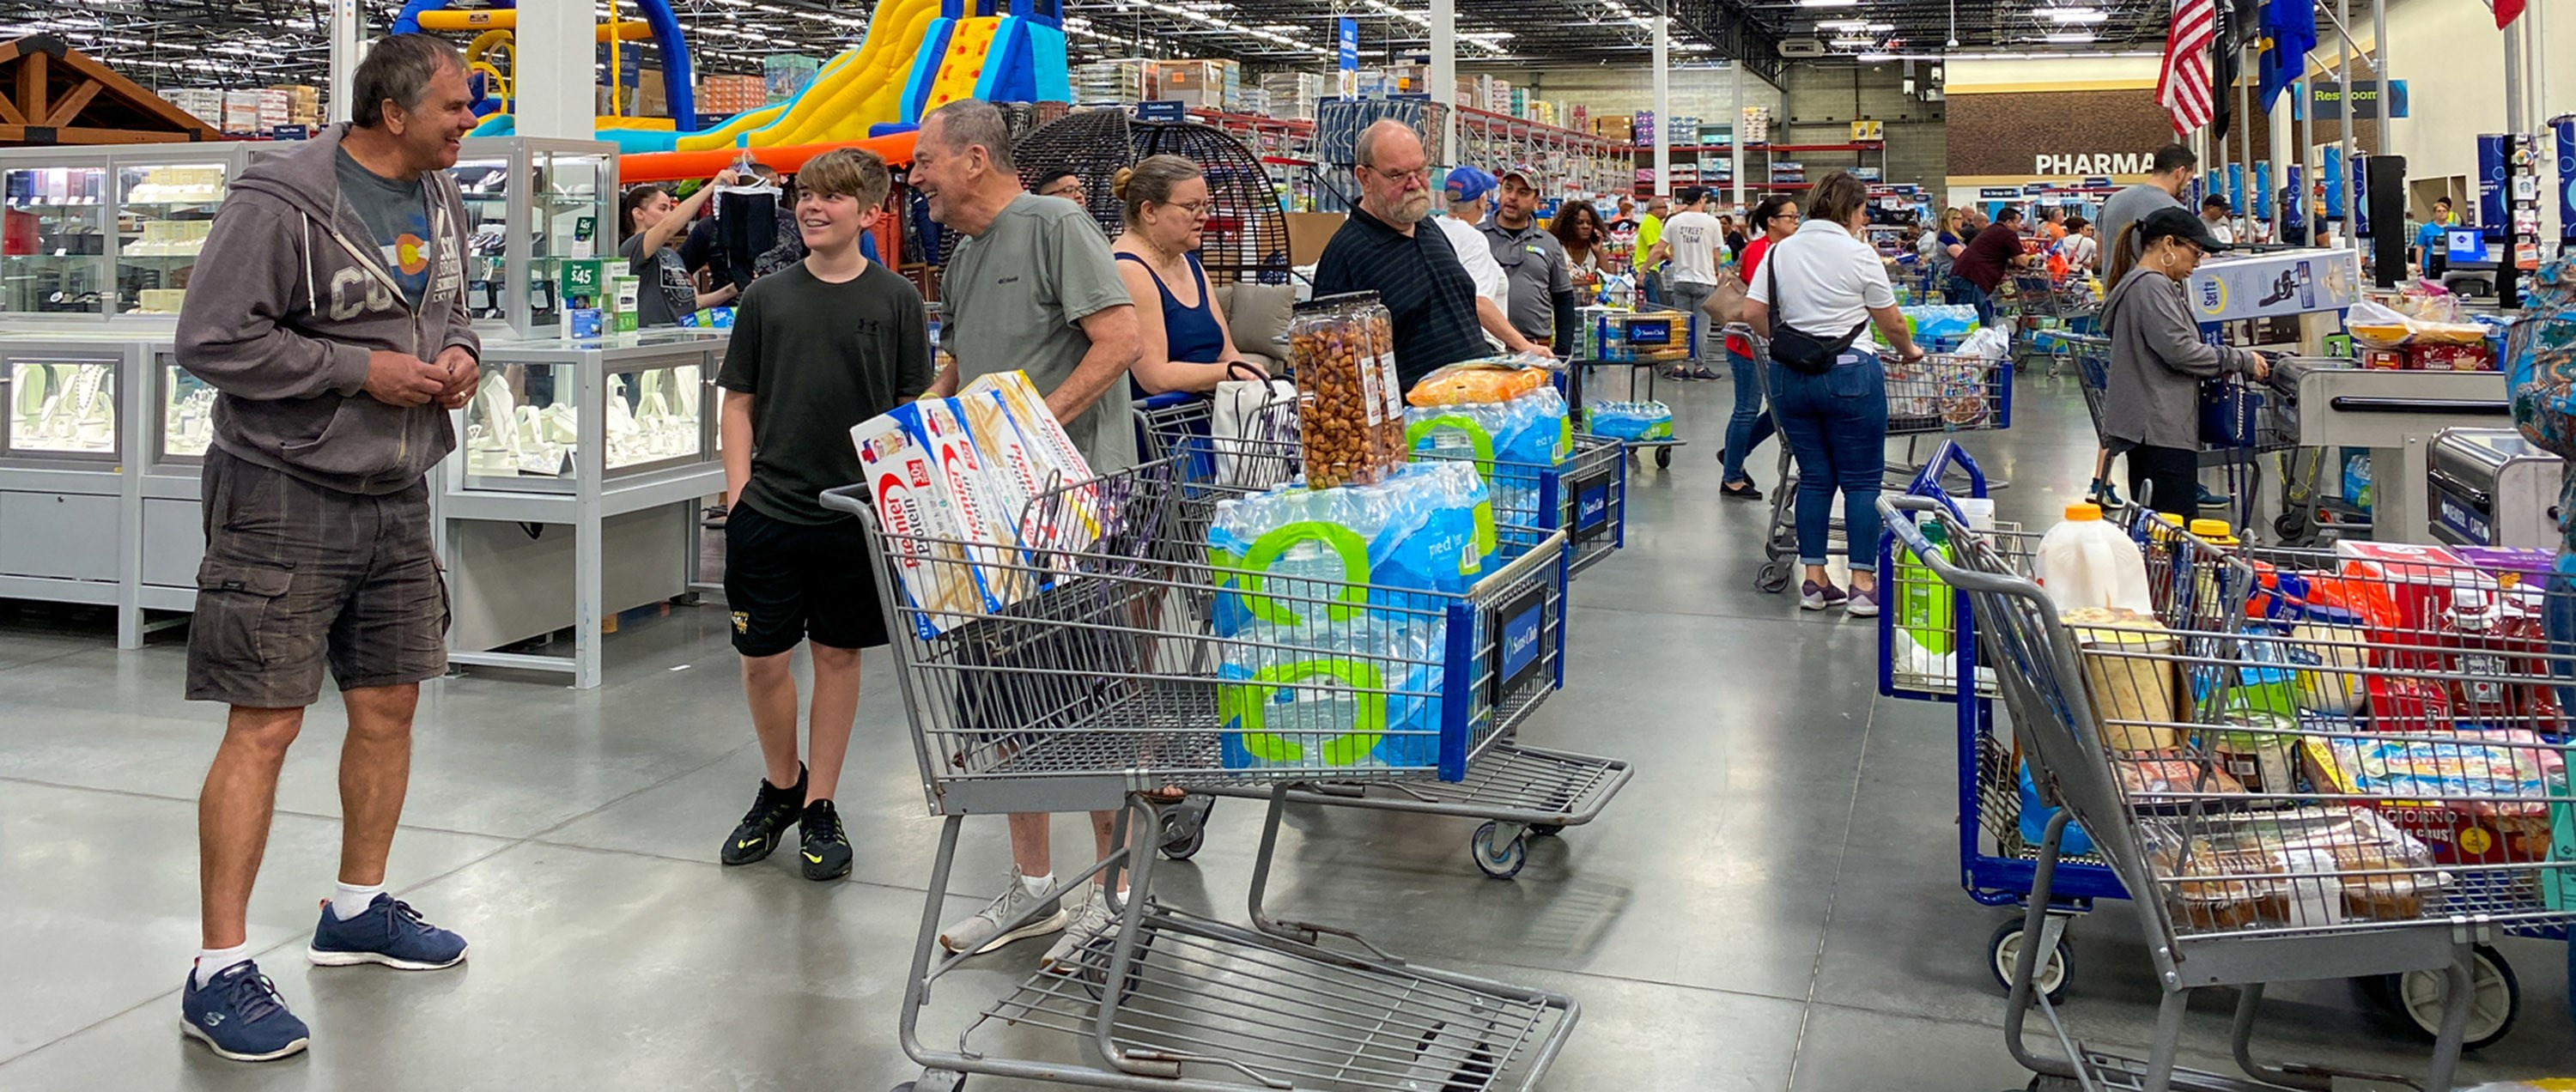 Customers standing in long lines waiting to check out their groceries at a Sams Club in Orlando, Florida due to the hoarding of essential products. Photo: Joni Hanebutt/Dreamstime.com